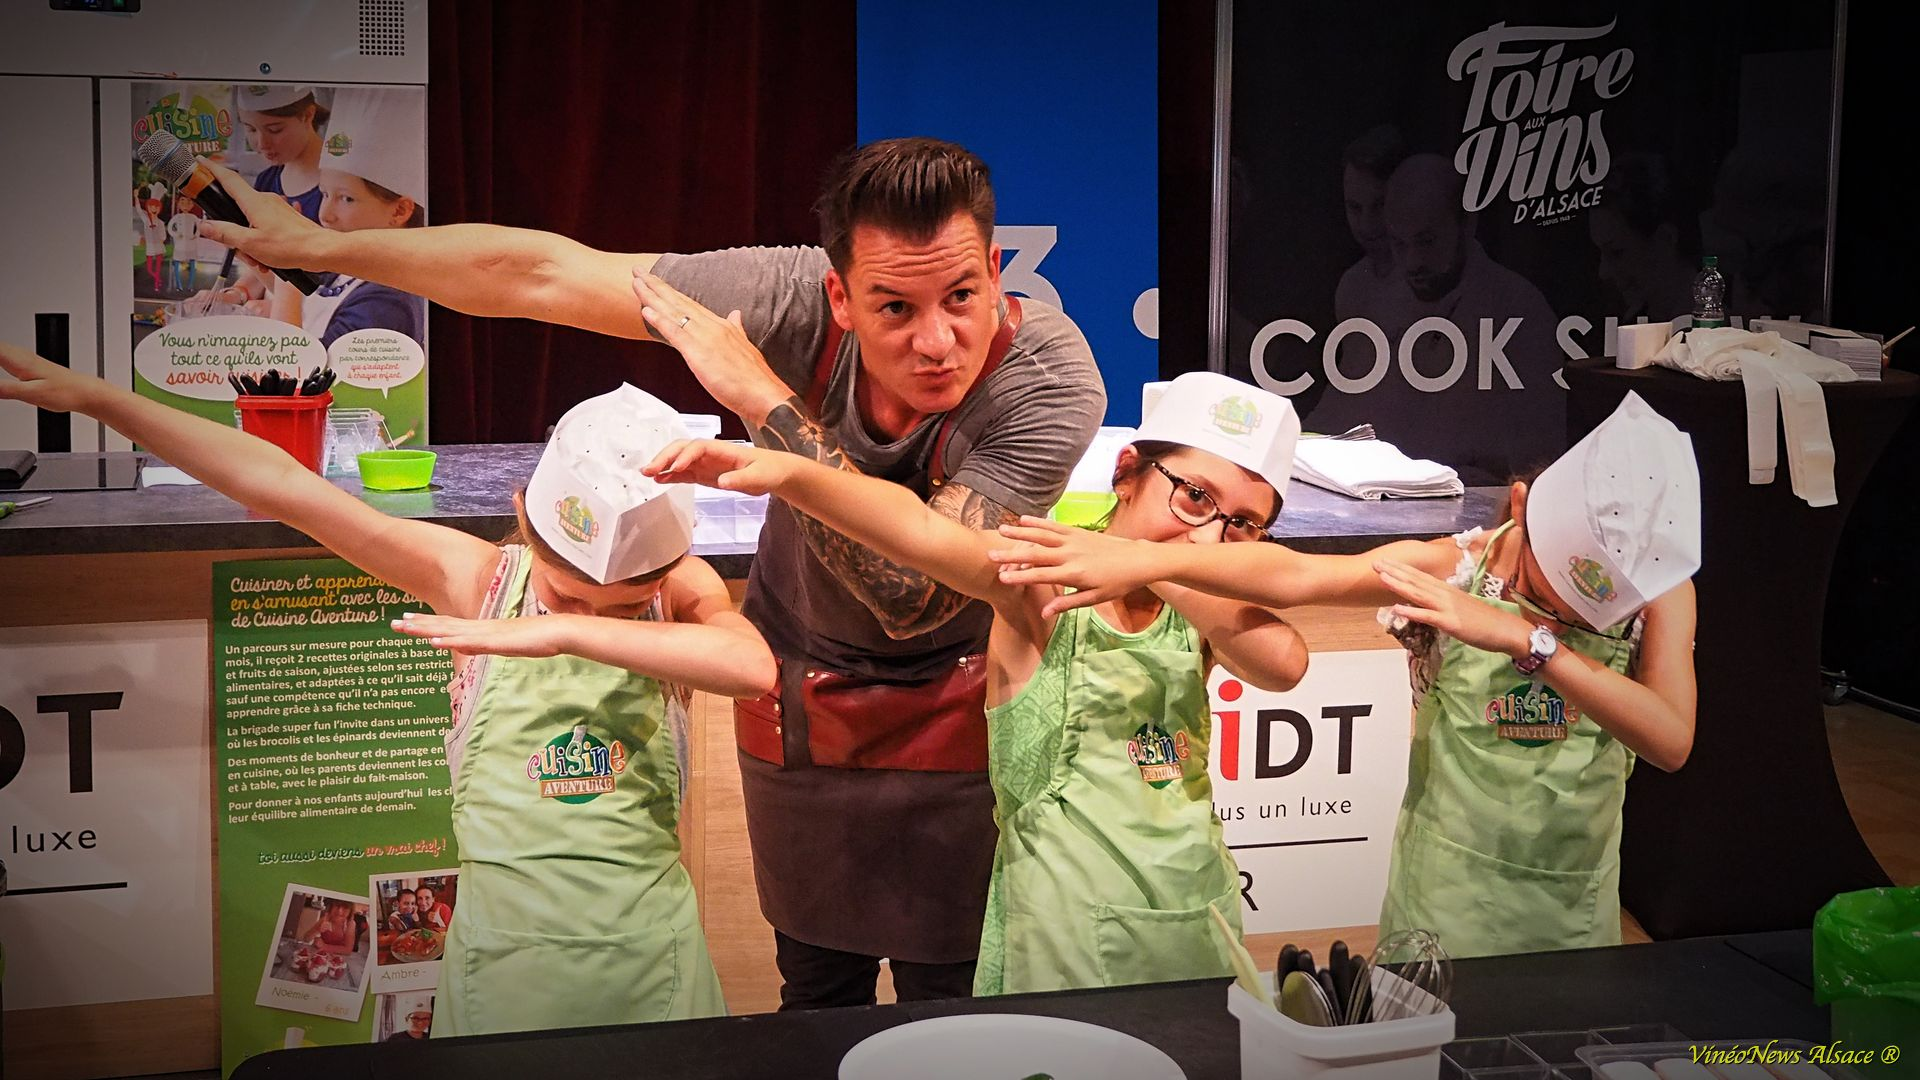 CookShow en mode chérubin